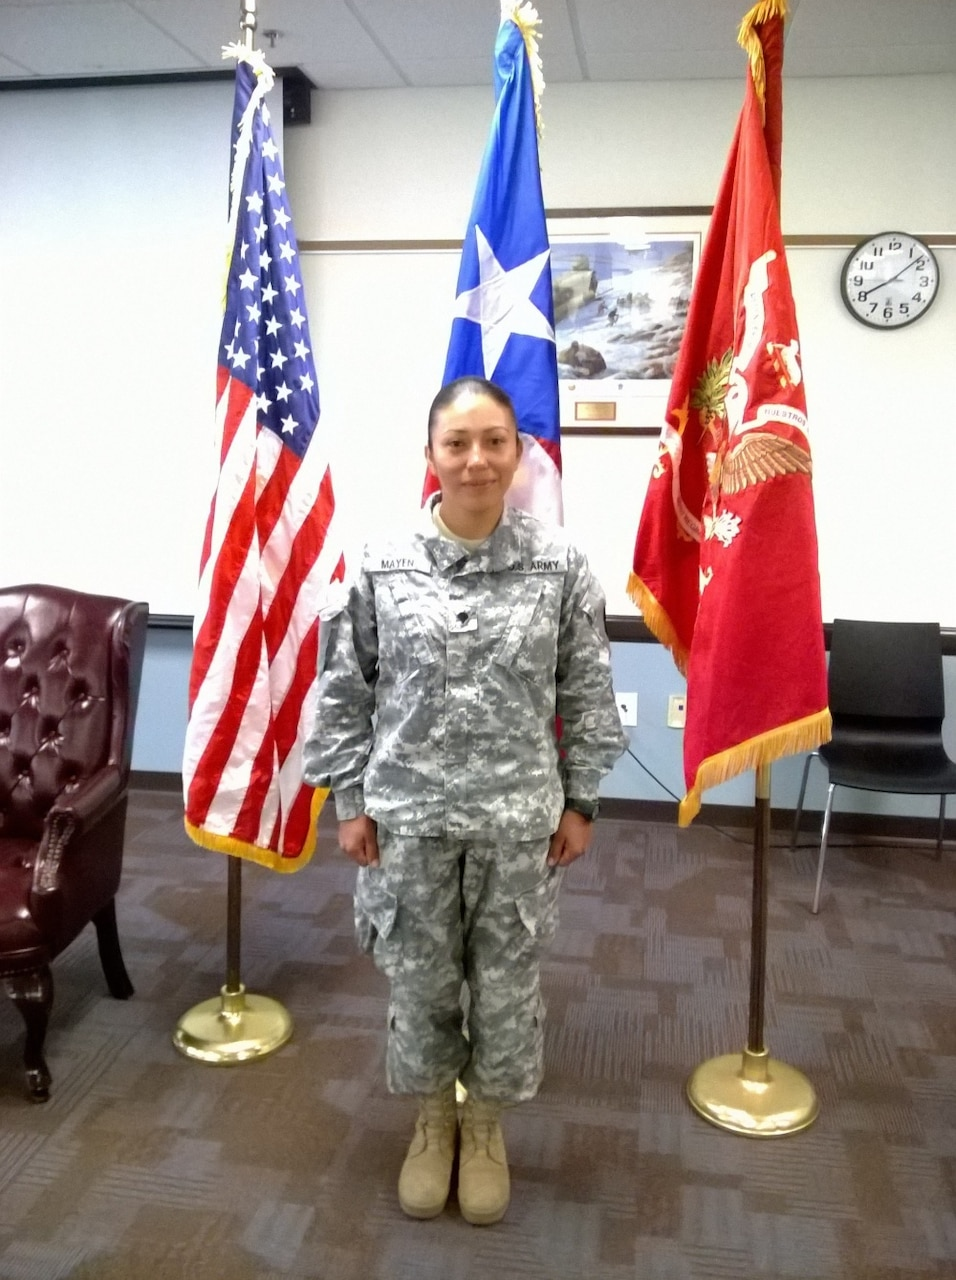 Army Spc. Lisseth Ivonne Mayen Hernandez poses for a photo at Fort Buchanan, Puerto Rico, Sept. 25, 2016. She said she realized her life's dream when she joined the Army Reserve on Dec. 20, 2014. Courtesy photo